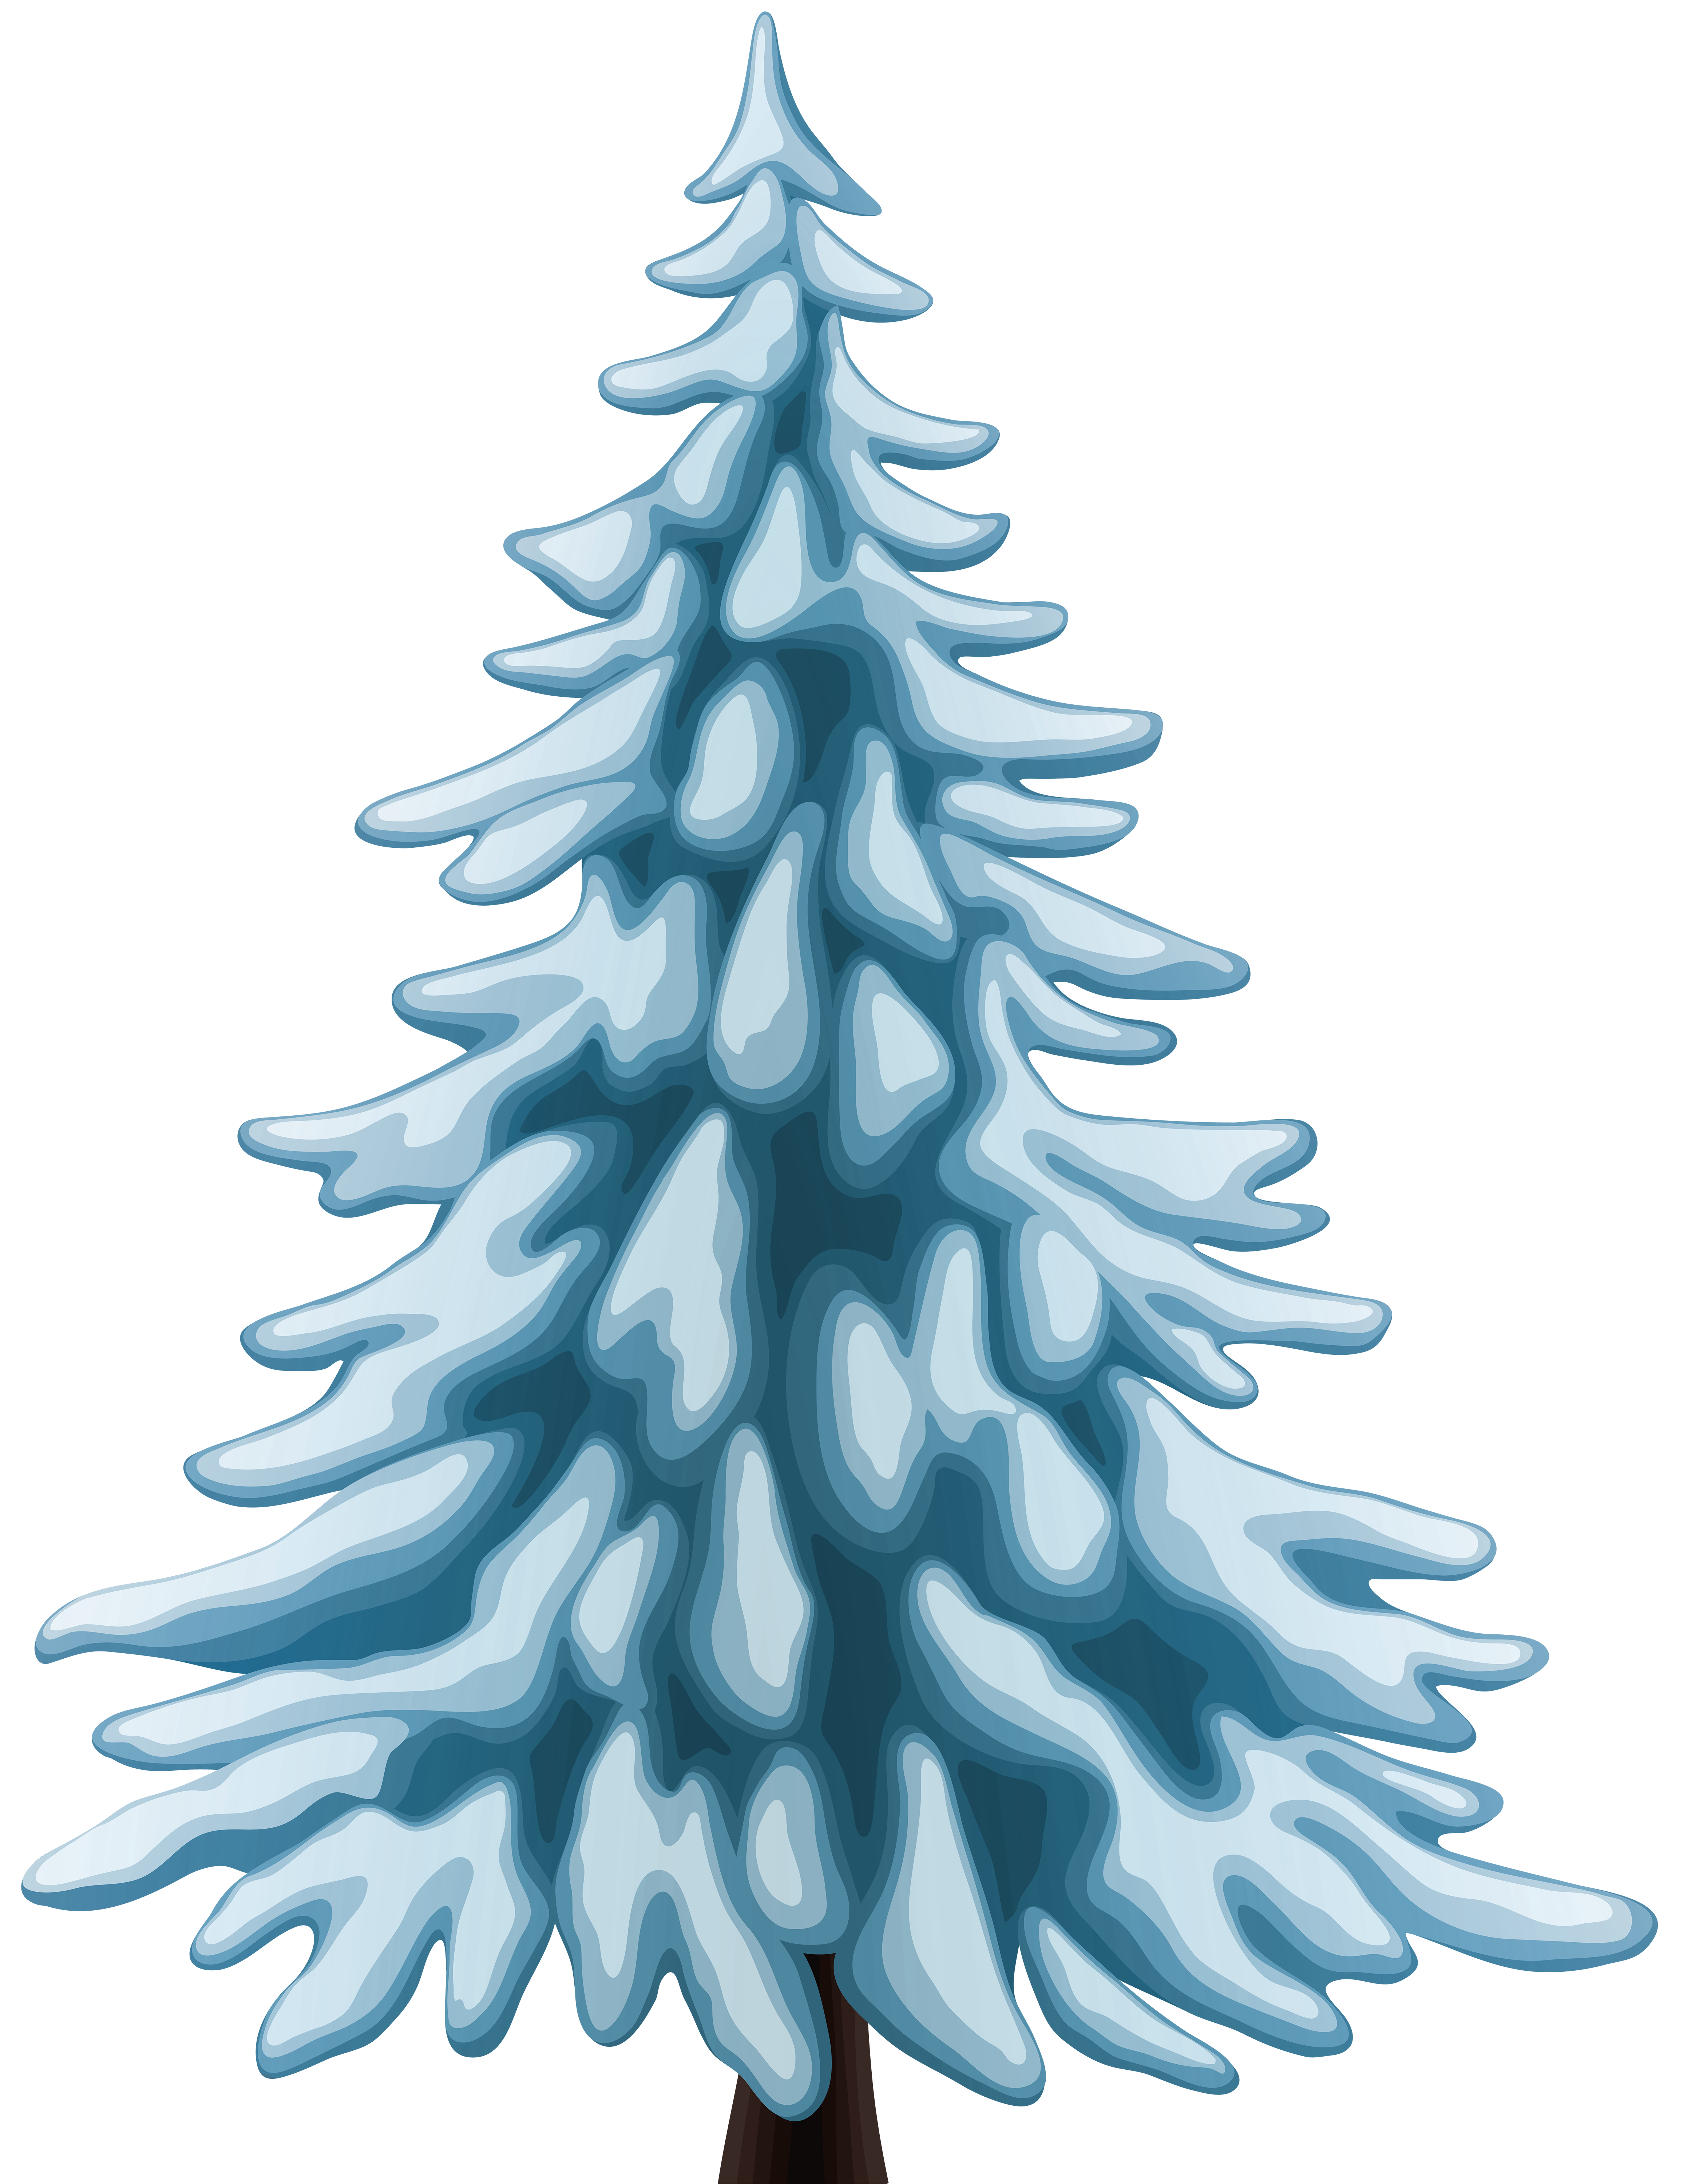 Winter tree clip art. Png pine trees image free stock